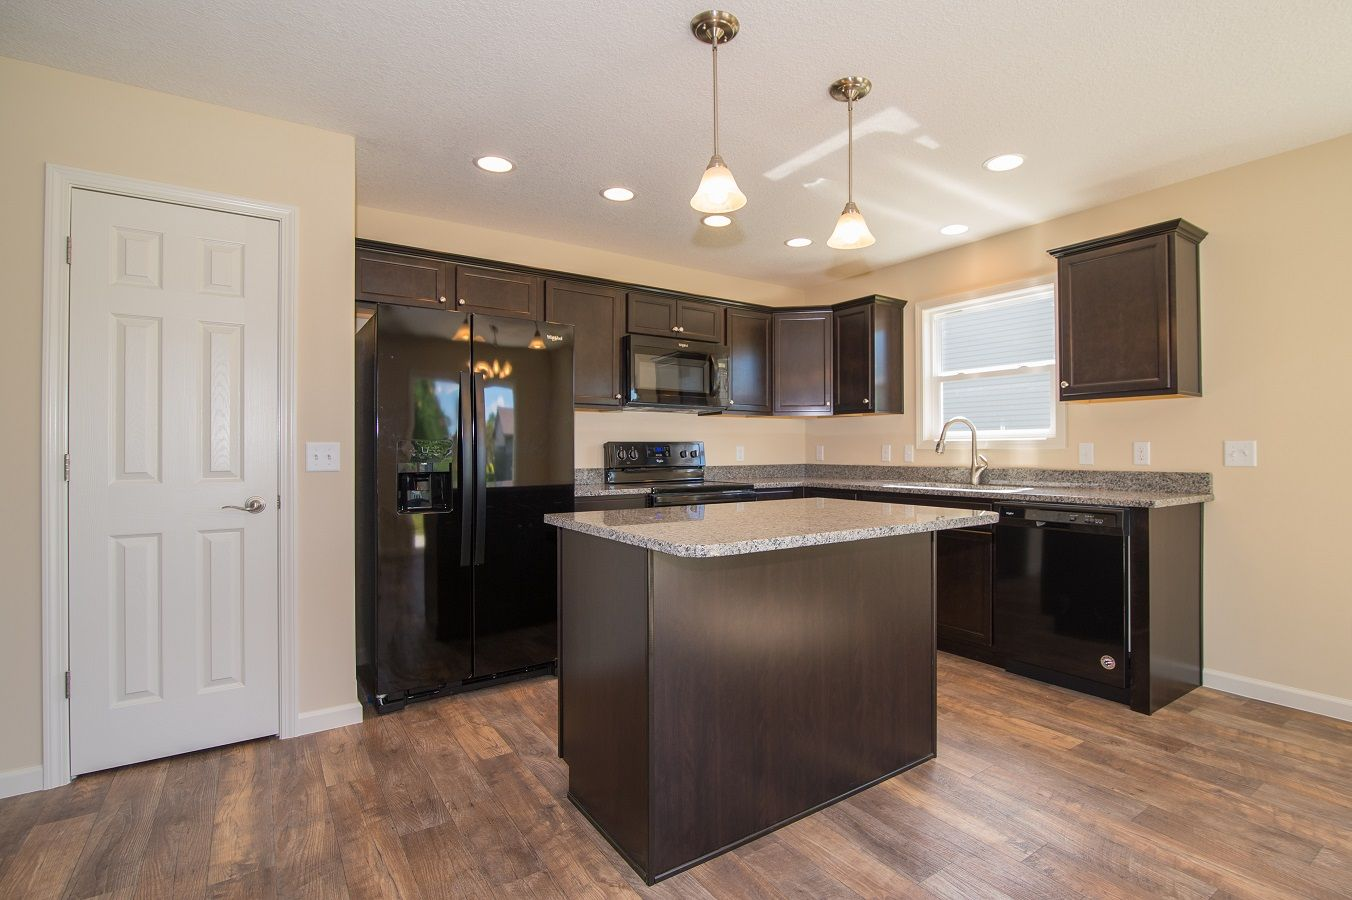 Kitchen featured in the Hollister II By D.R. Horton in Fort Wayne, IN